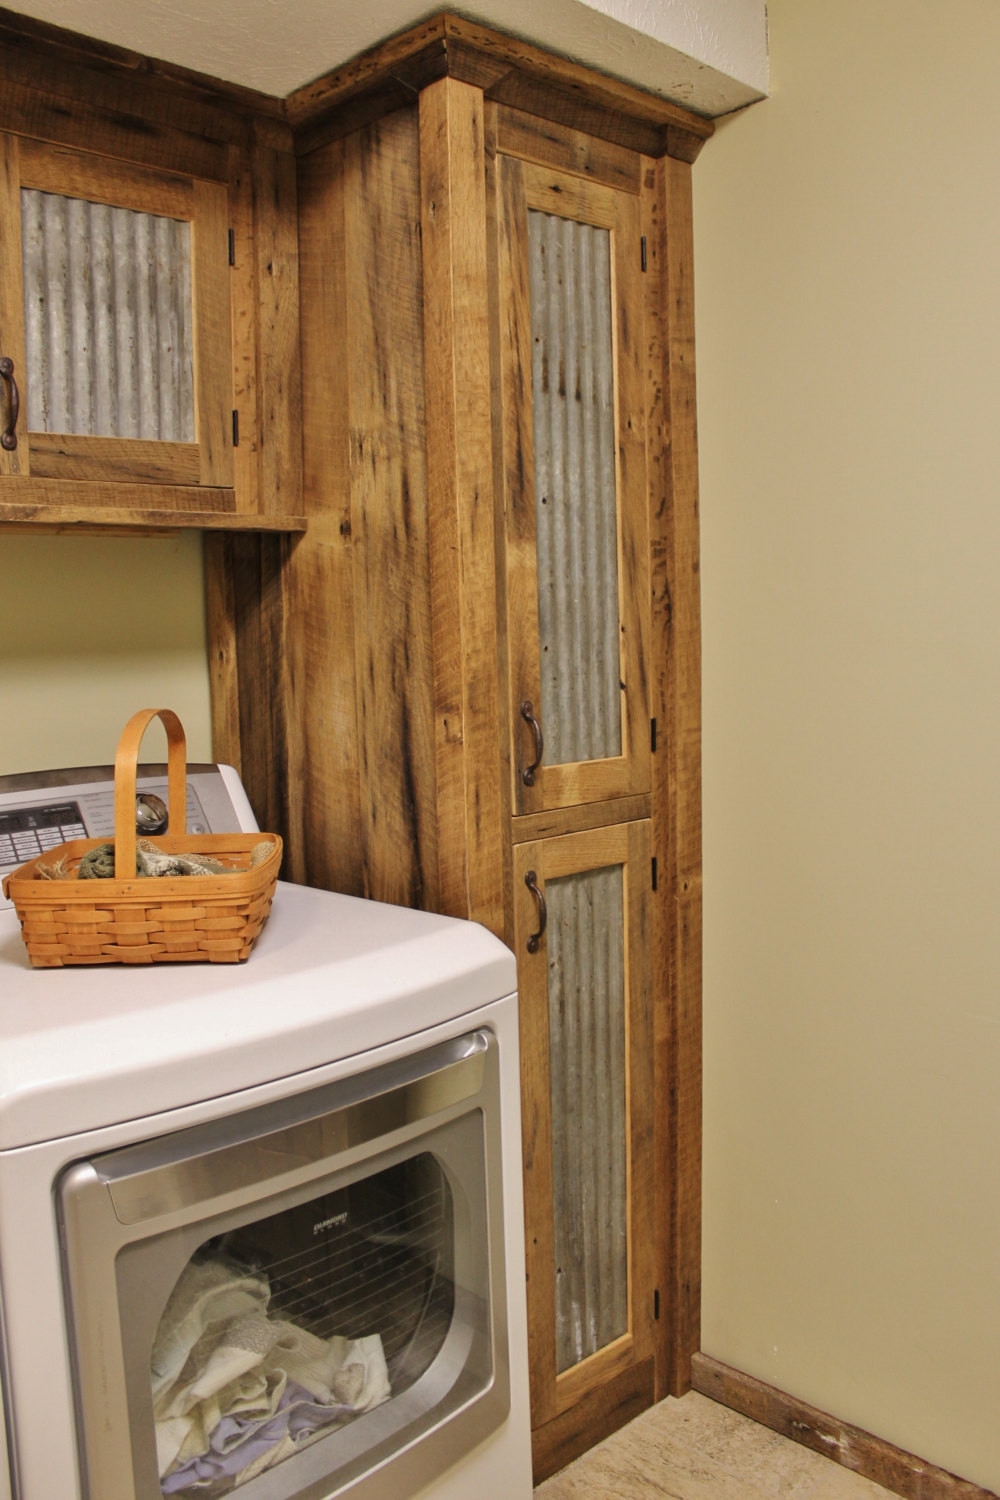 Best ideas about Rustic Cabinets DIY . Save or Pin Rustic Tall Storage Reclaimed Barn Wood Cabinet w Tin Doors Now.